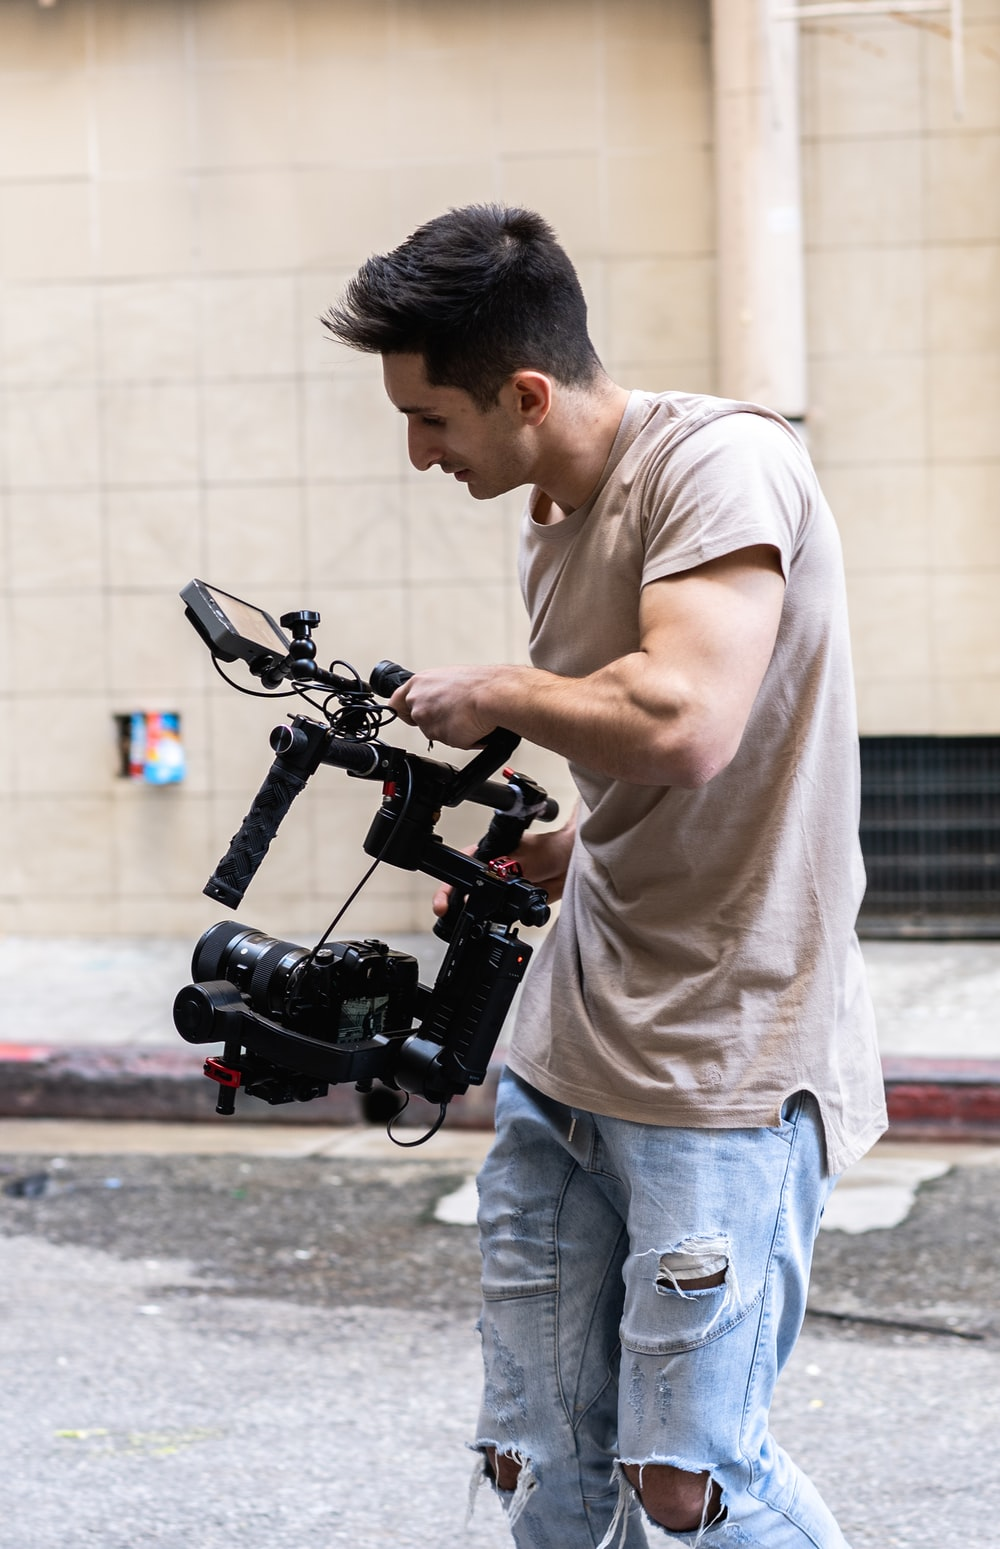 man in white t-shirt and blue denim jeans holding black video camera